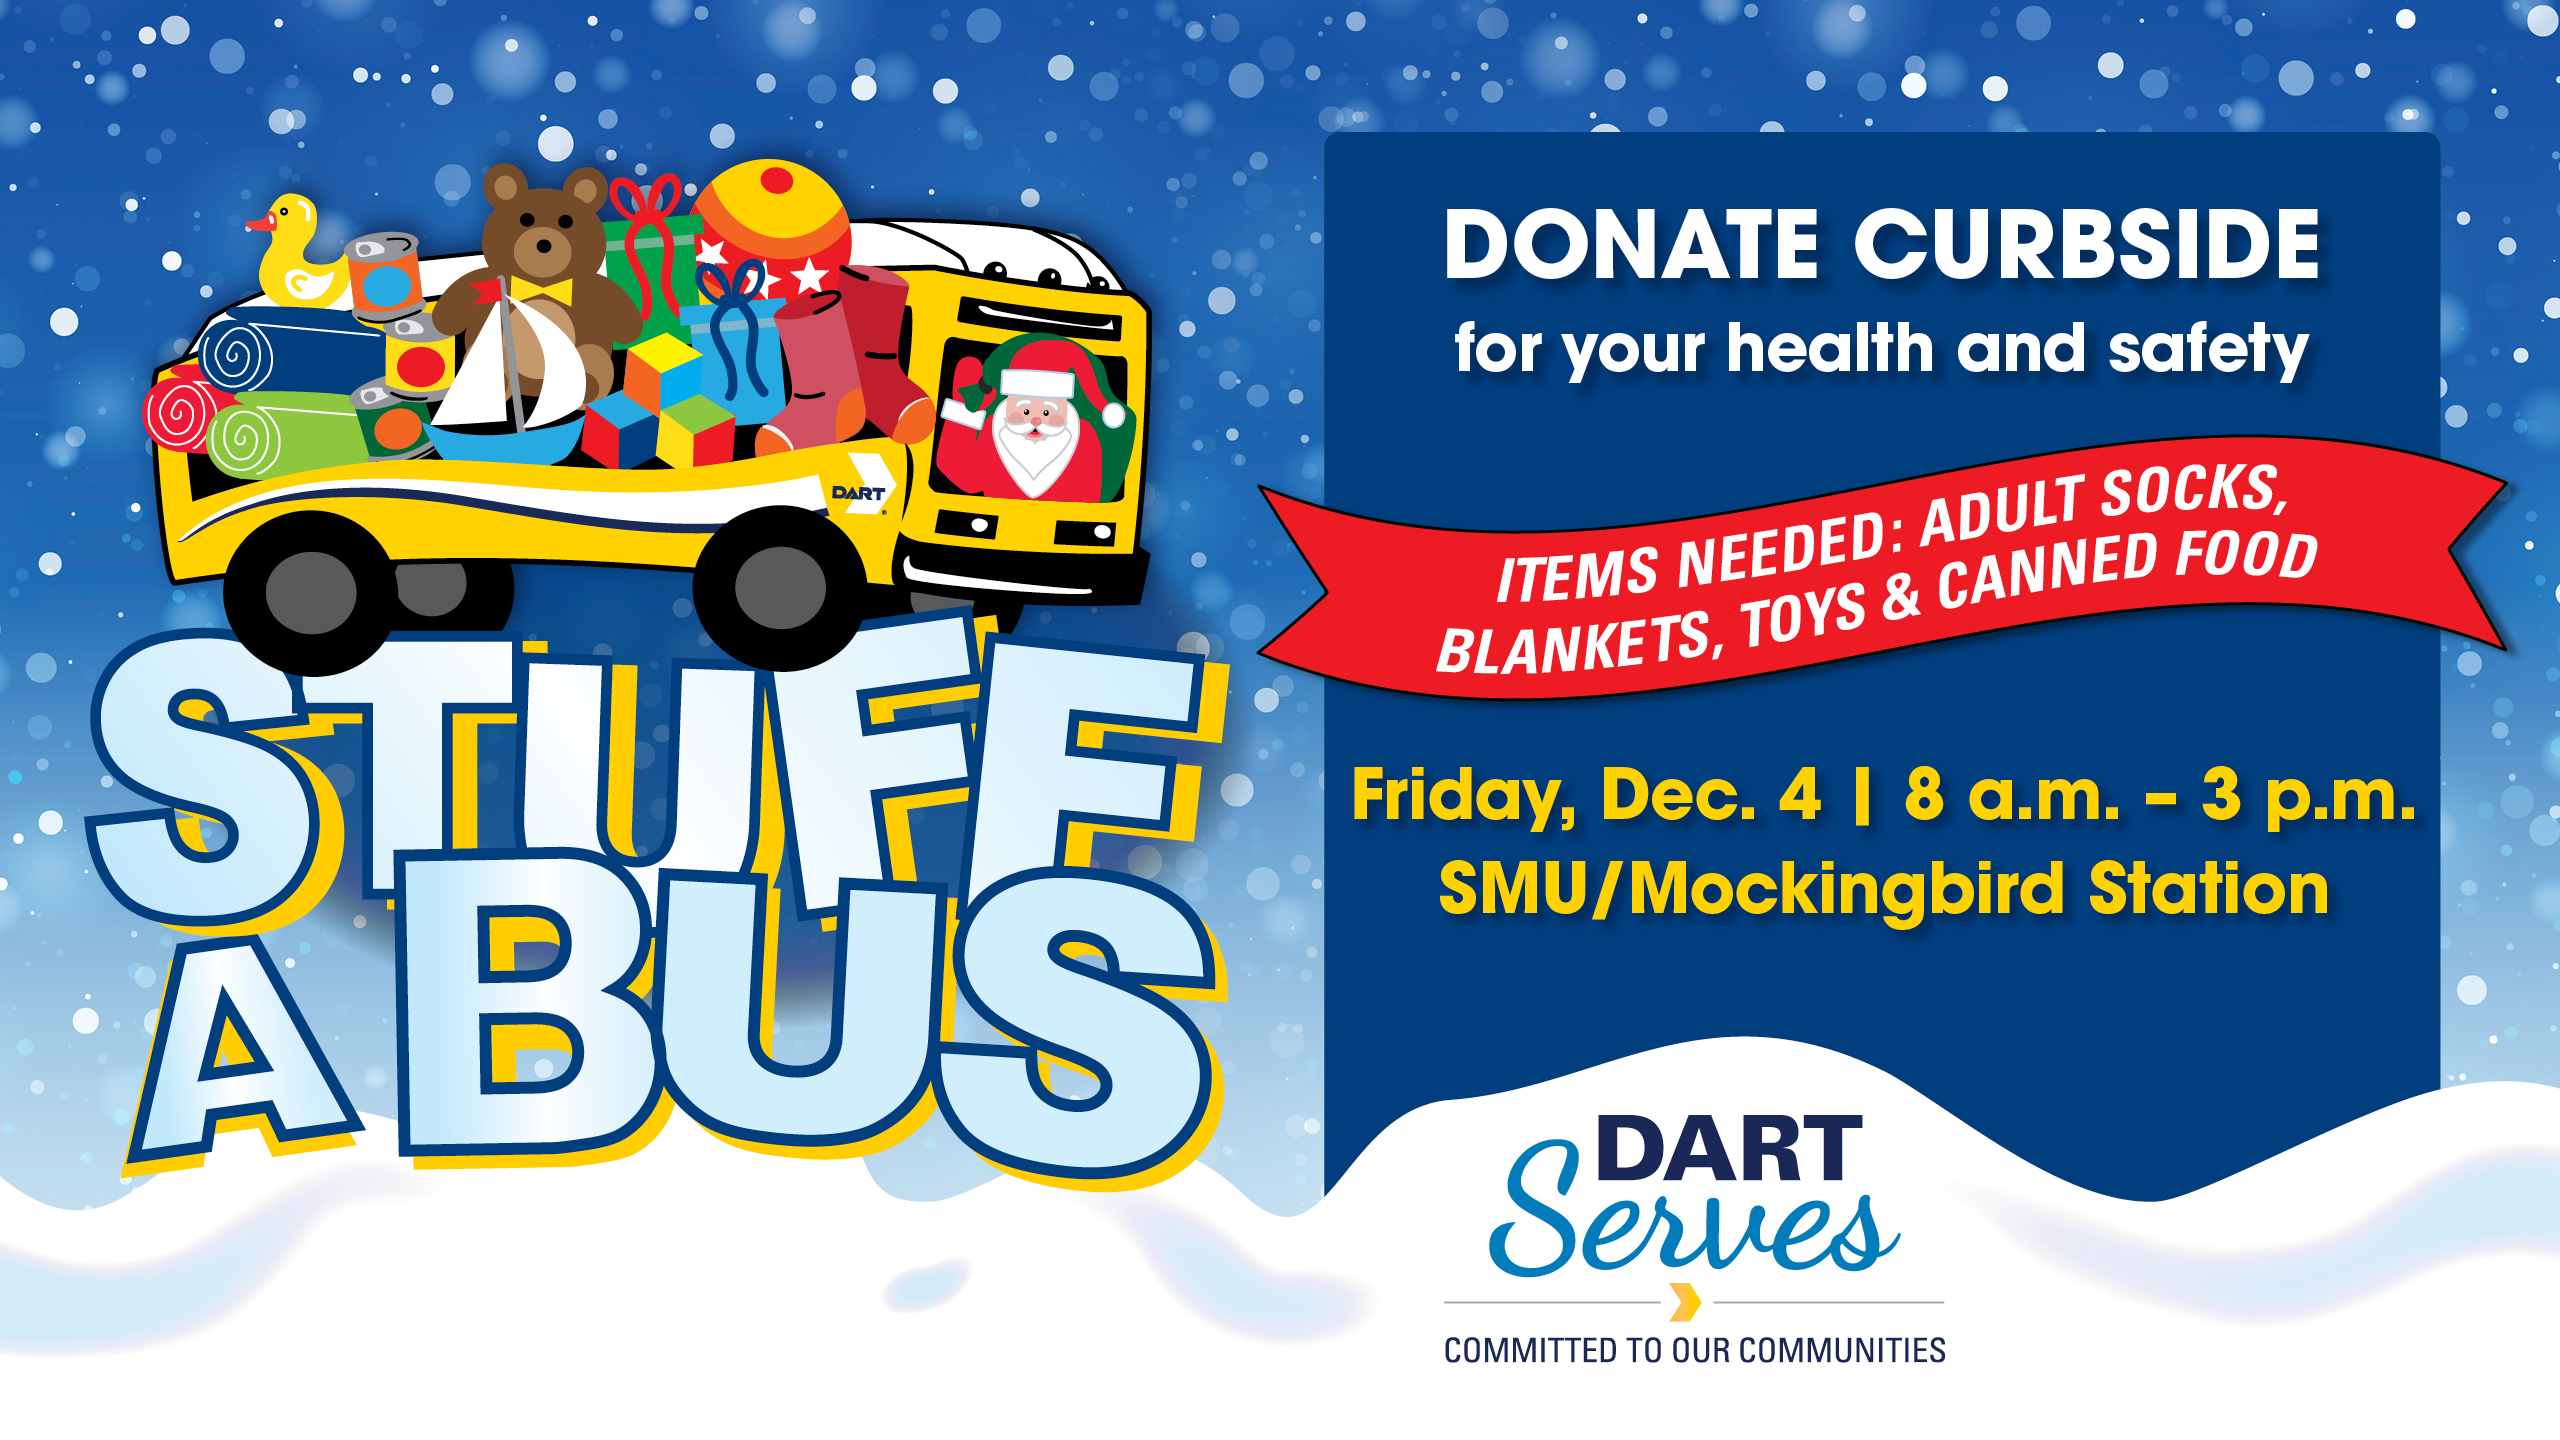 Help DART Stuff a Bus with a Curbside Donation